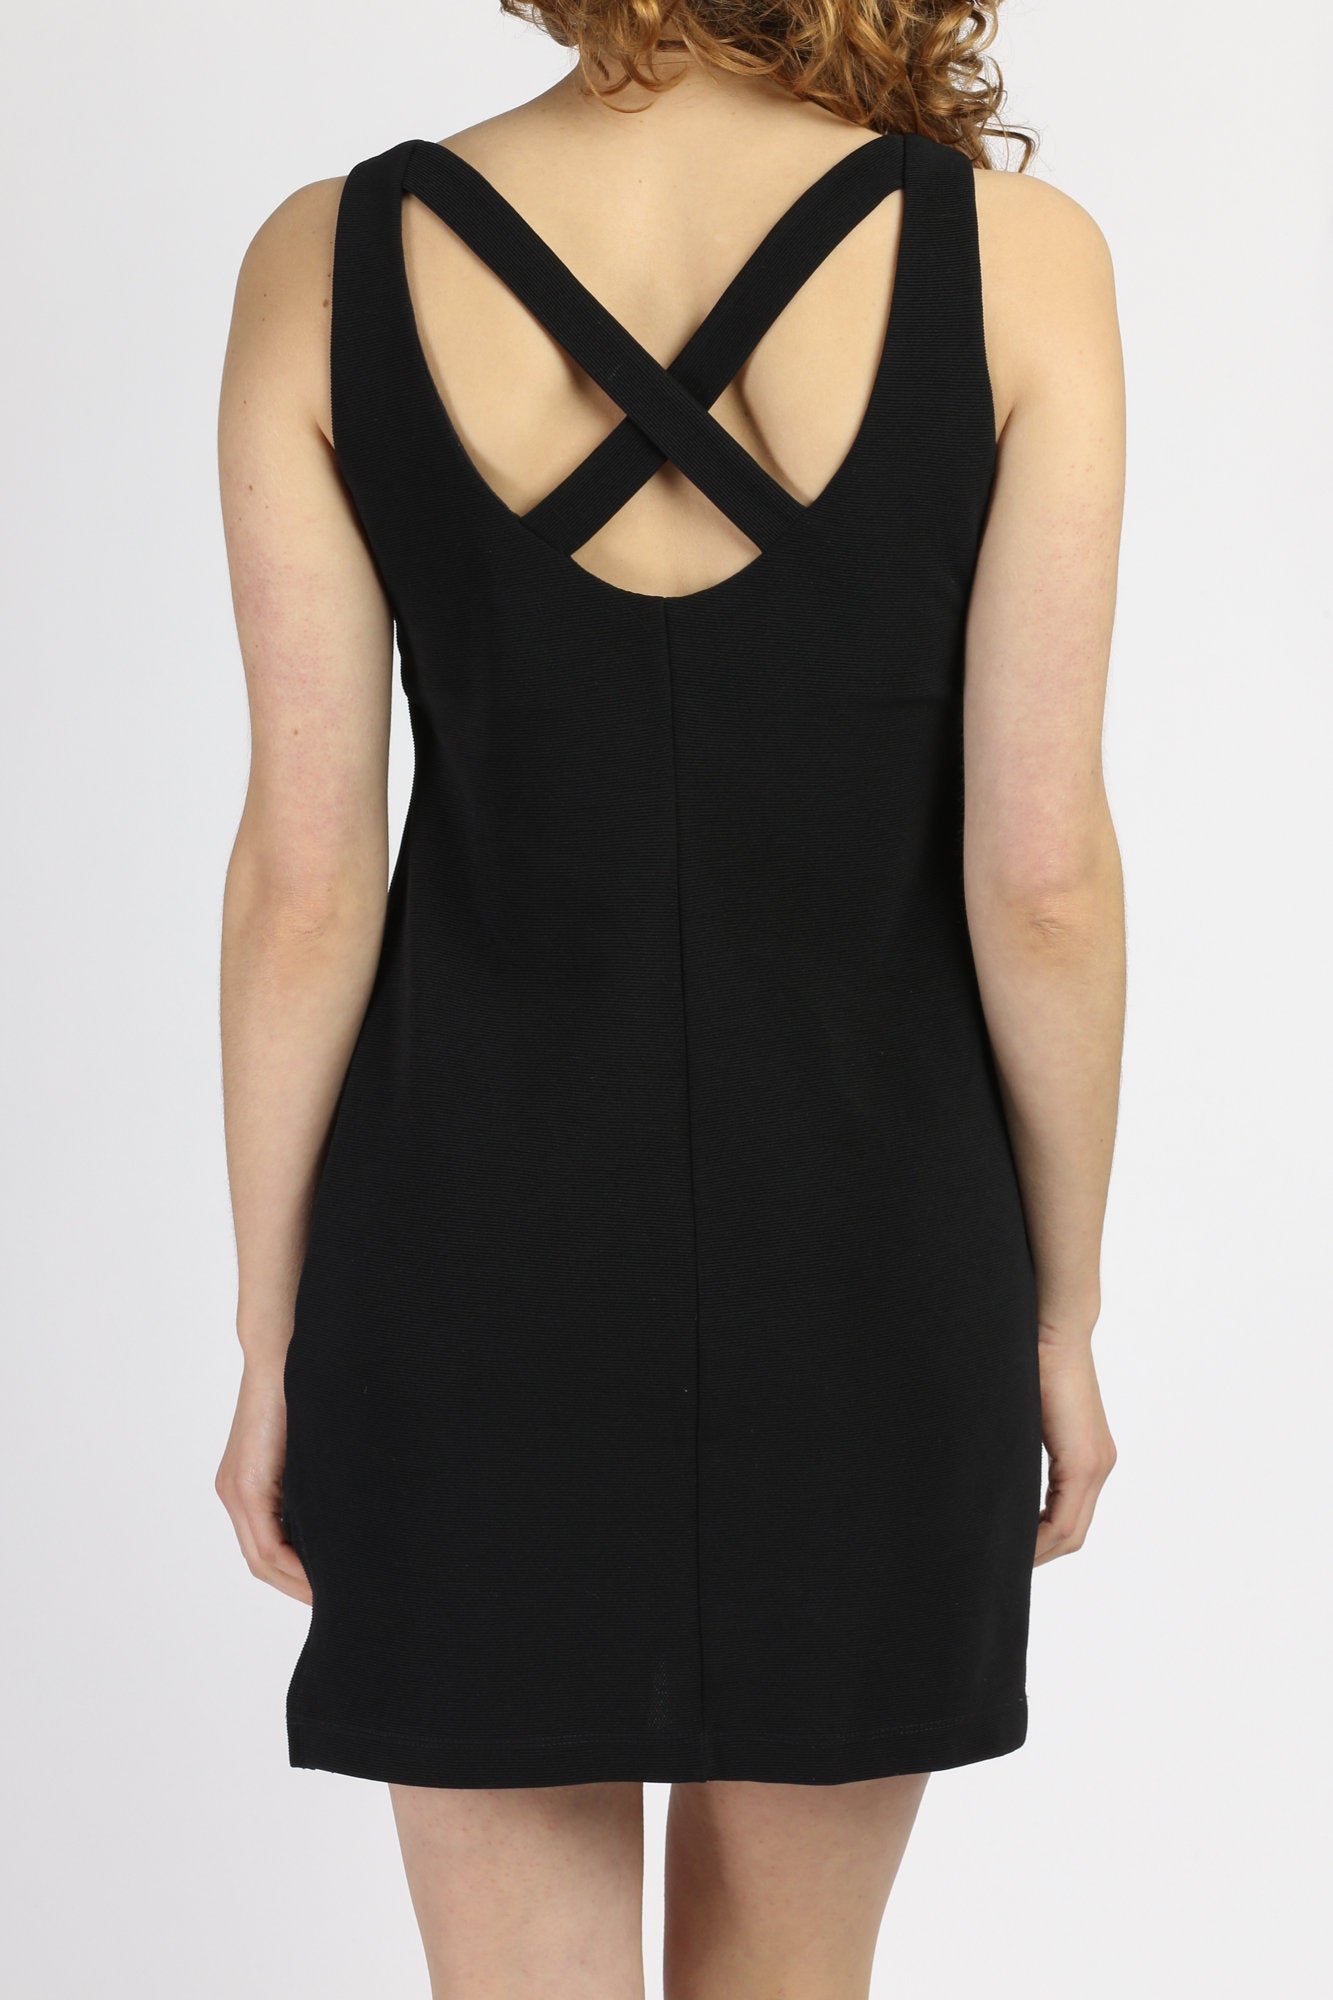 90s Strappy Little Black Dress - Medium